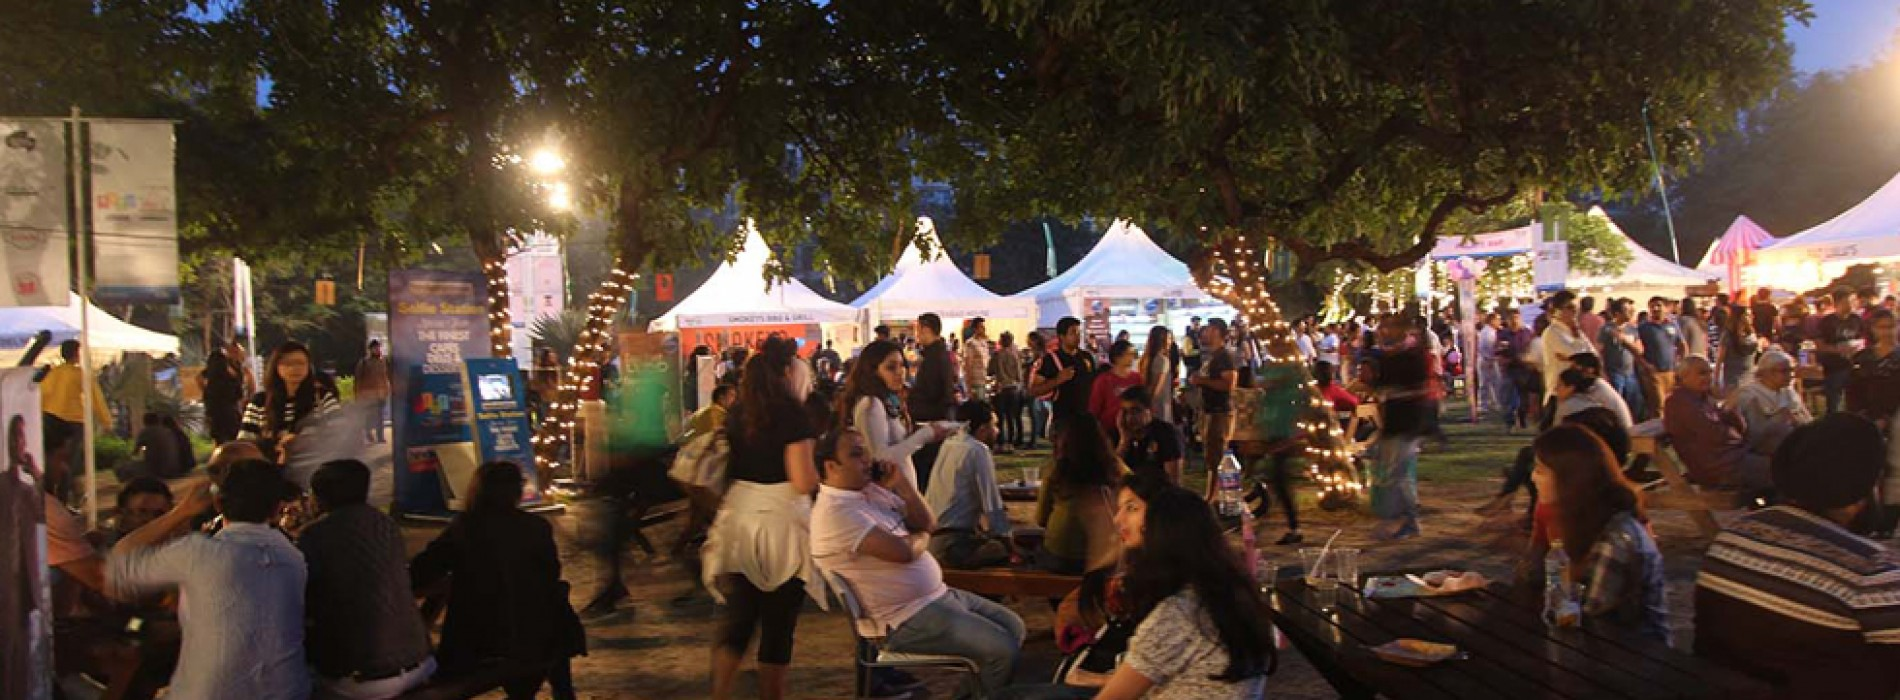 Lloyd HT PALATE fest is geared up to offer a gastronomical experience once again